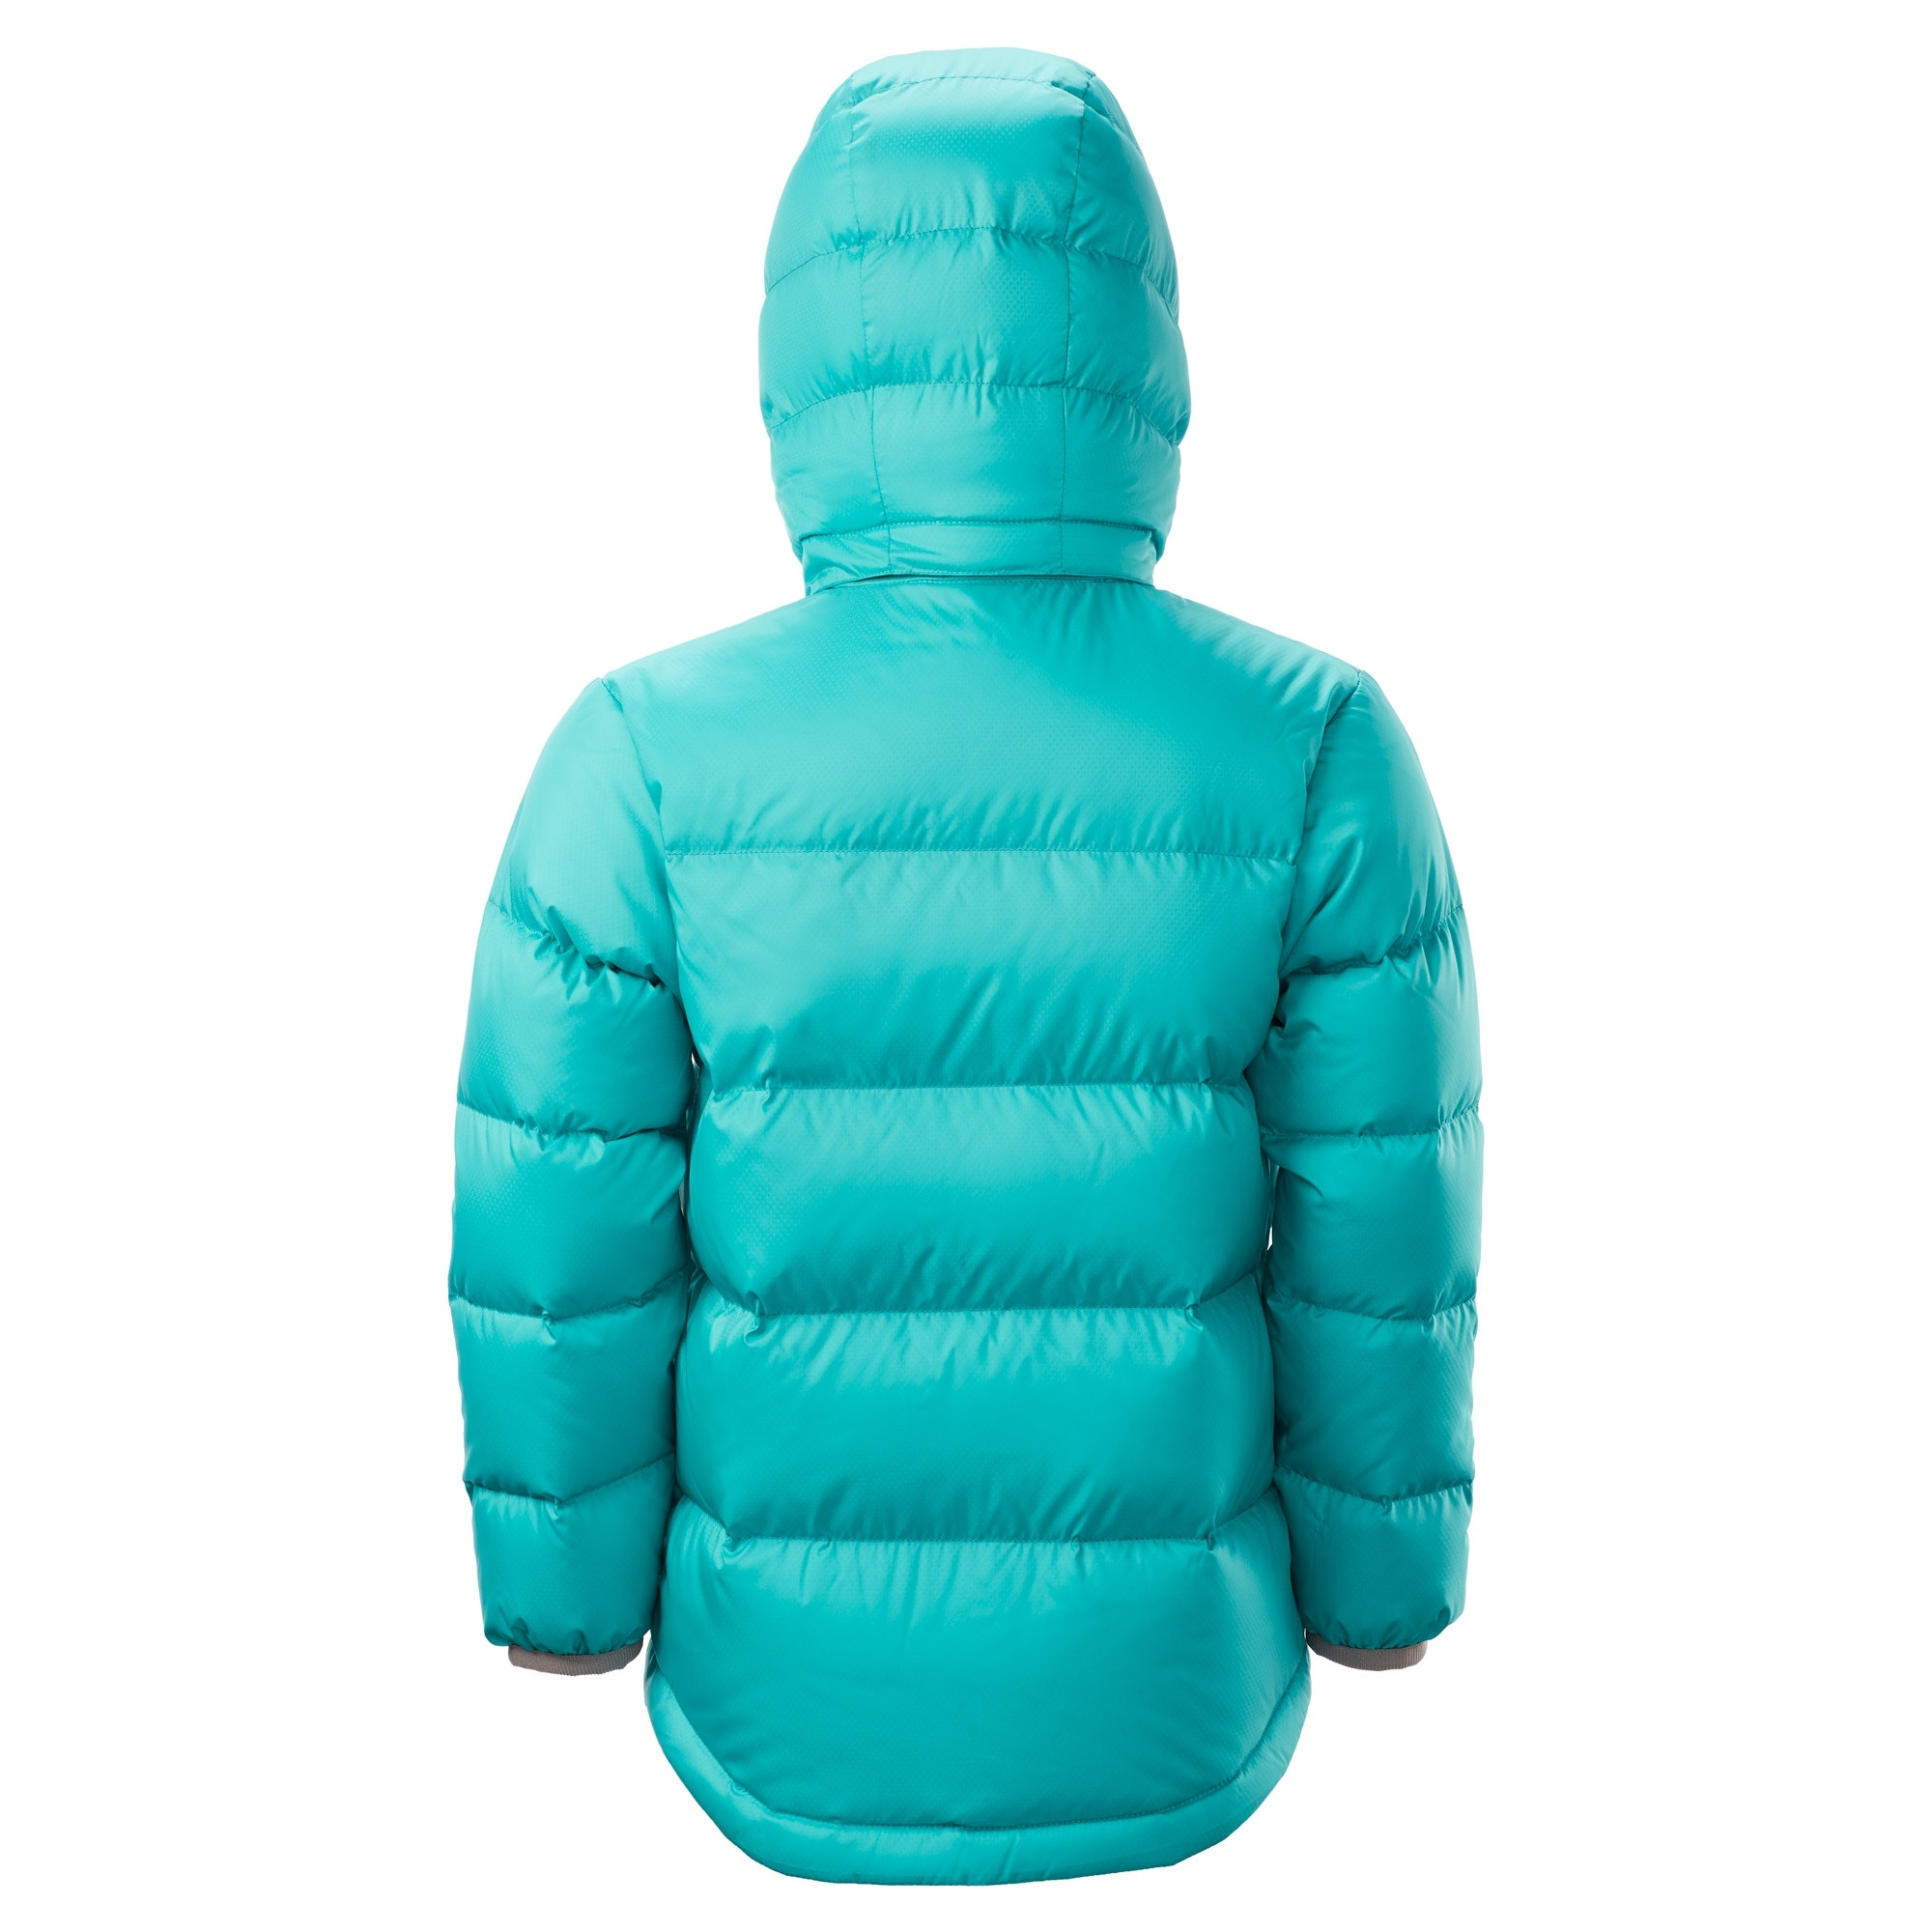 Kathmandu-Elcho-Kids-Boys-Girls-Hood-Warm-Winter-Outdoor-Duck-Down-Puffer-Jacket thumbnail 14